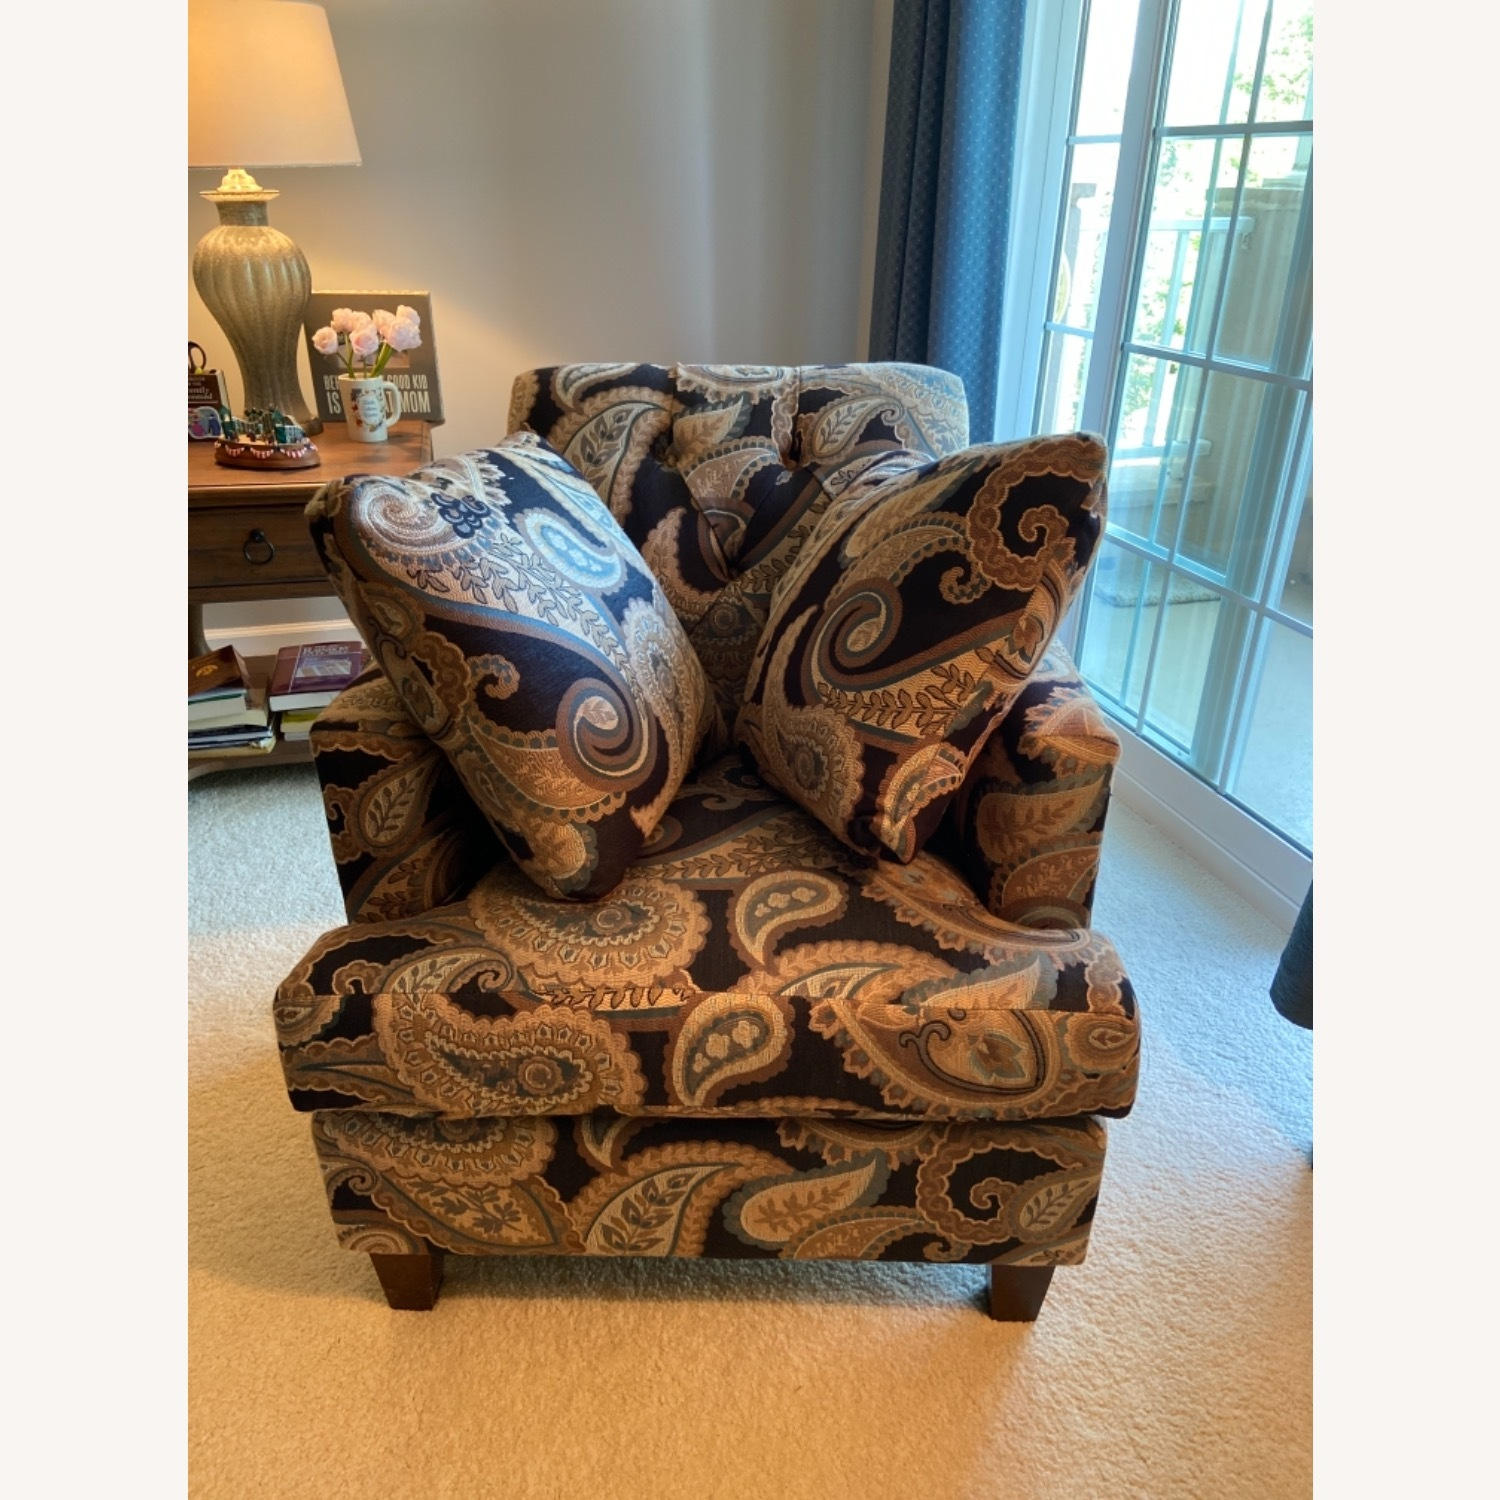 Blue Patterned Chair with Matching Pillows - image-1